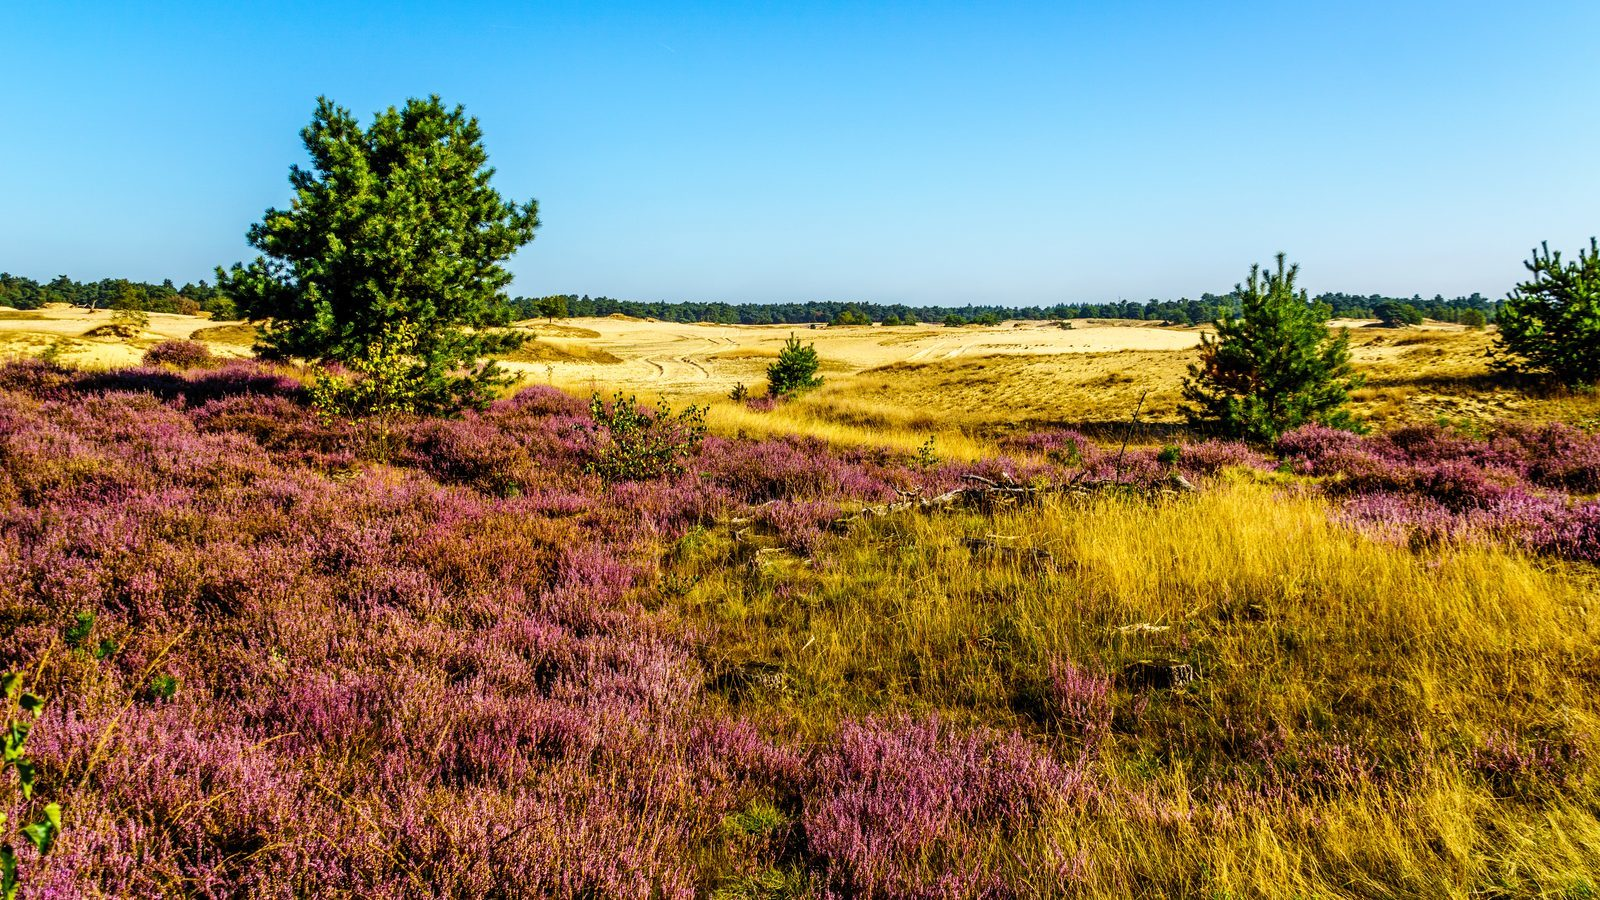 Gelderland most popular province among tourists